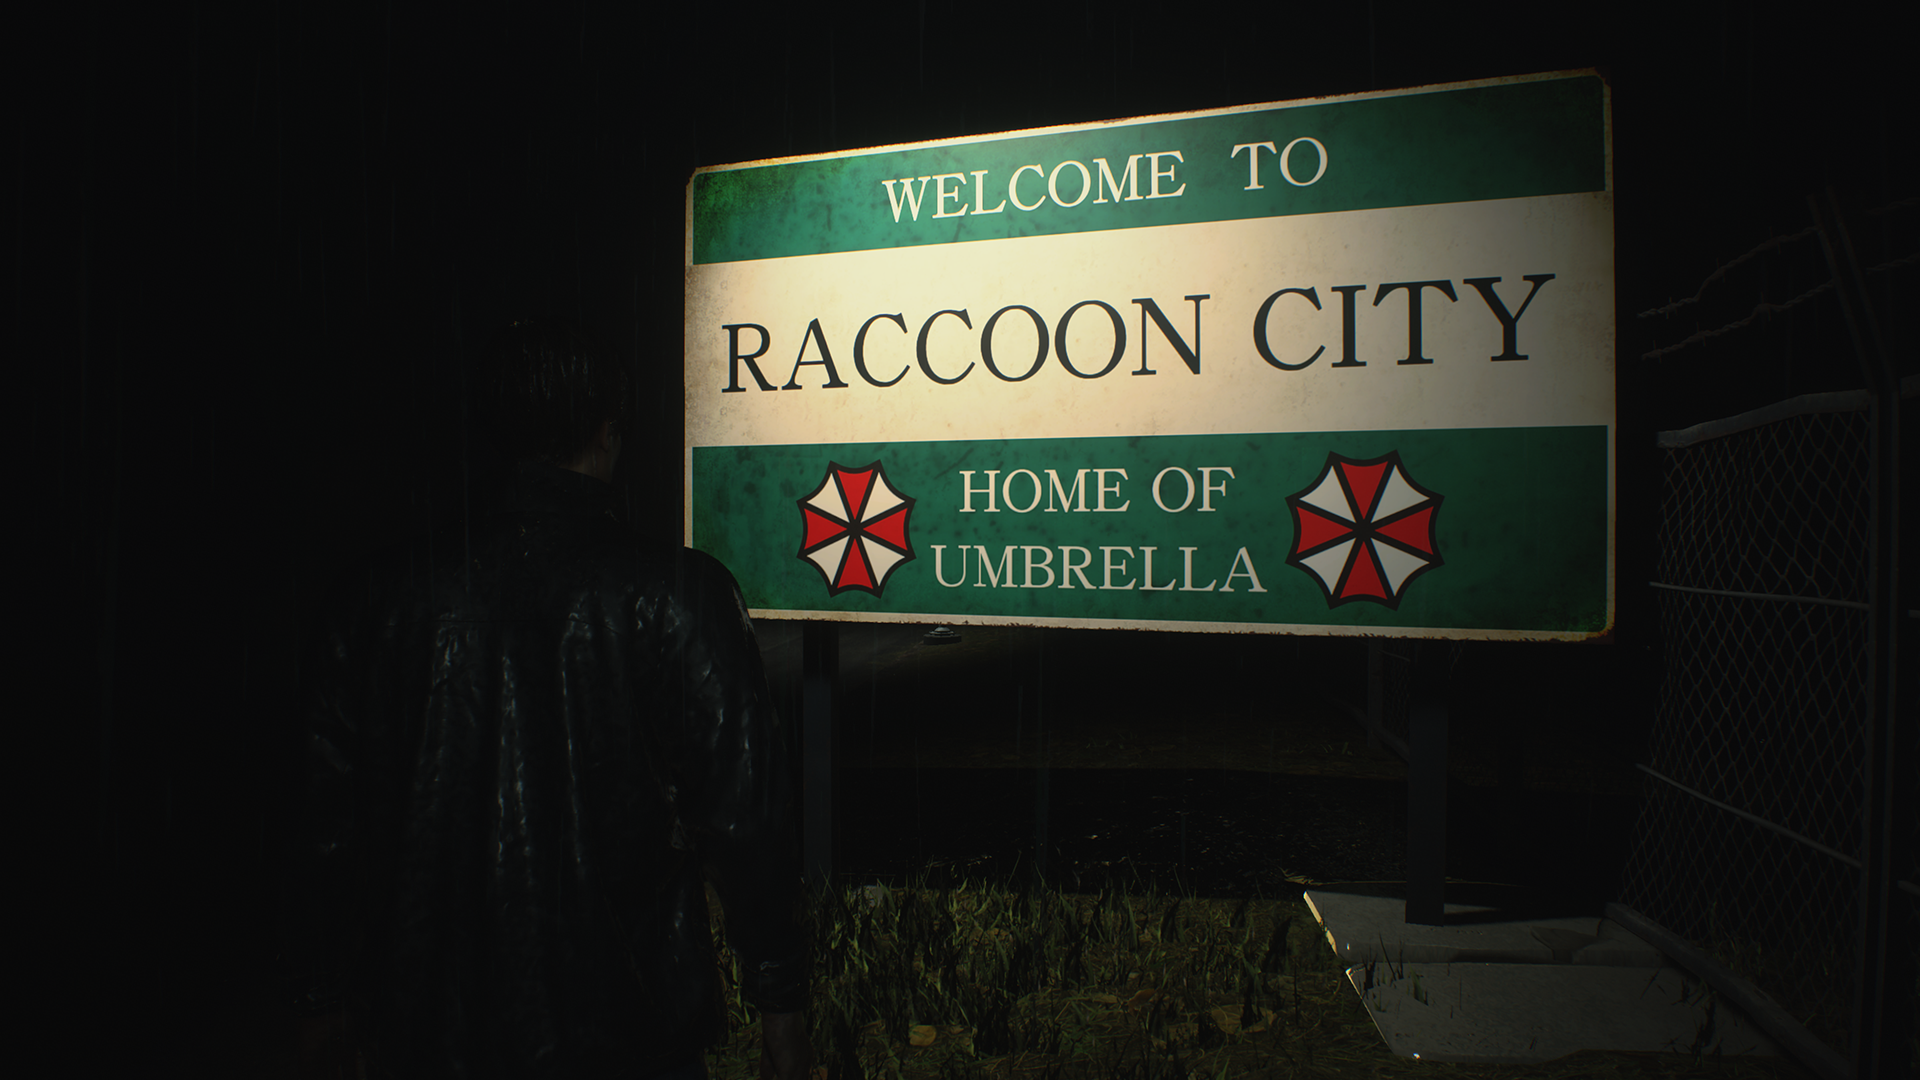 Raccoon City